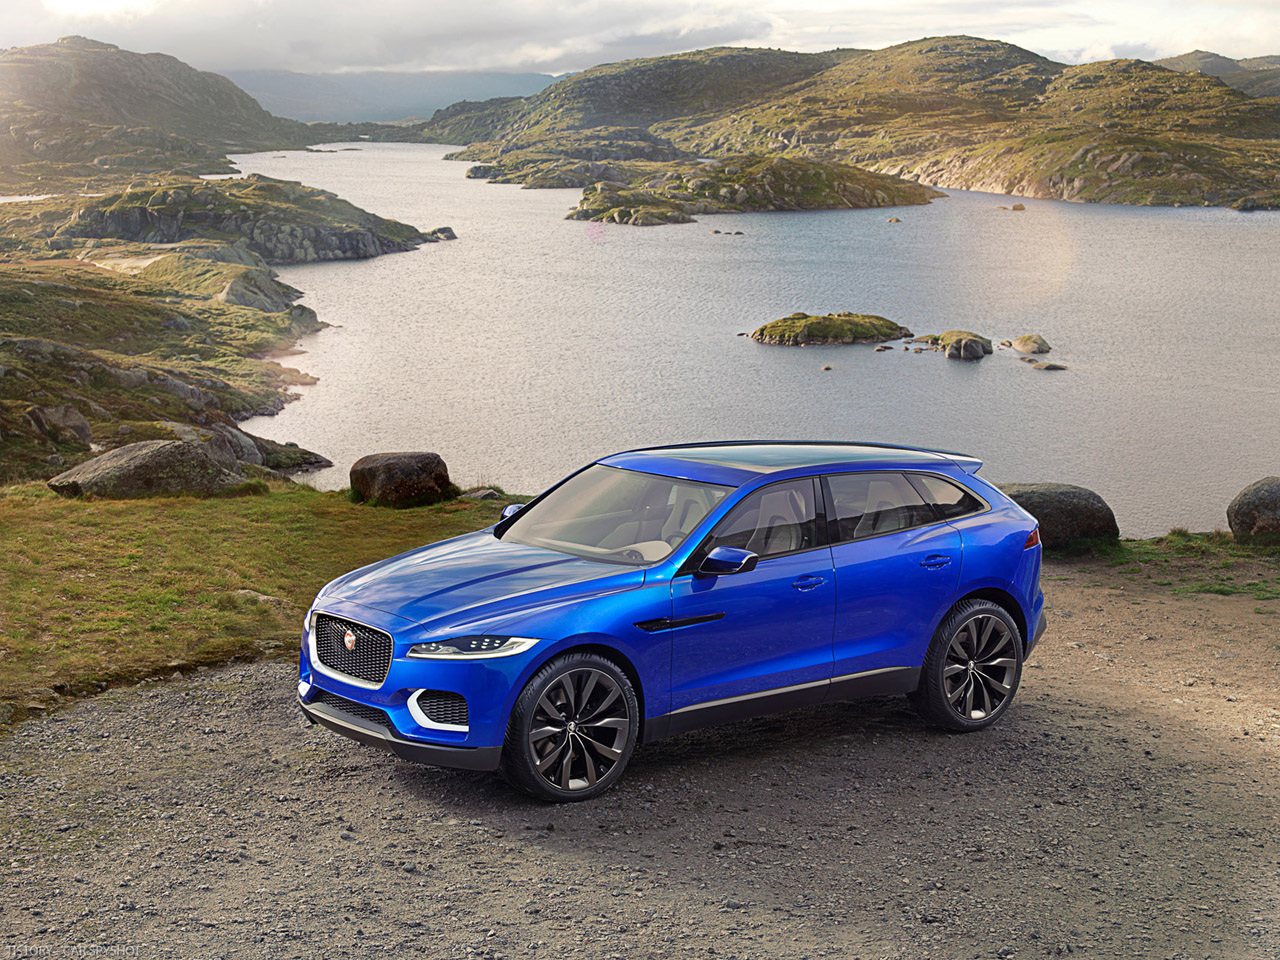 재규어의 선전포고 - 2013 Jaguar C-X17 Sports Crossover concept